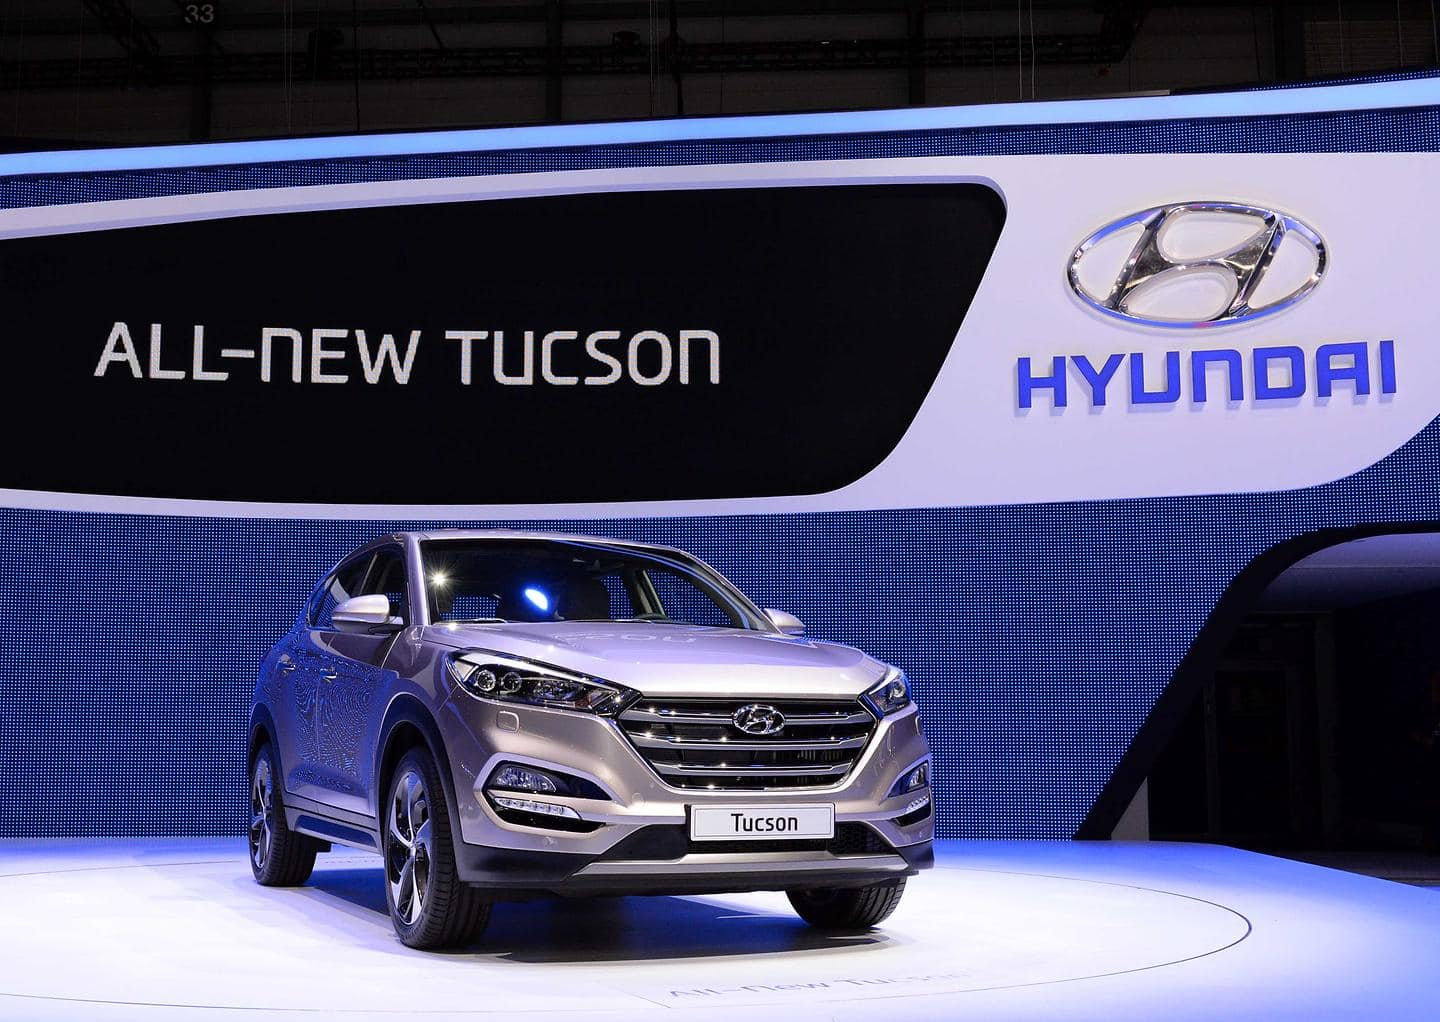 All-New Tucson leads youngest European Hyundai Motor line-up at 2015 Geneva Motor Show